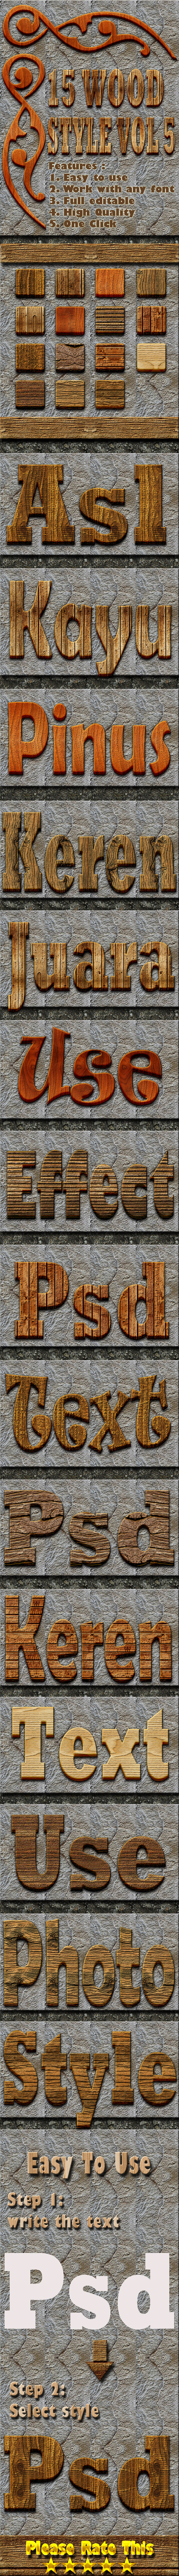 15 Wood Text Effect Style Vol 7 - Styles Photoshop